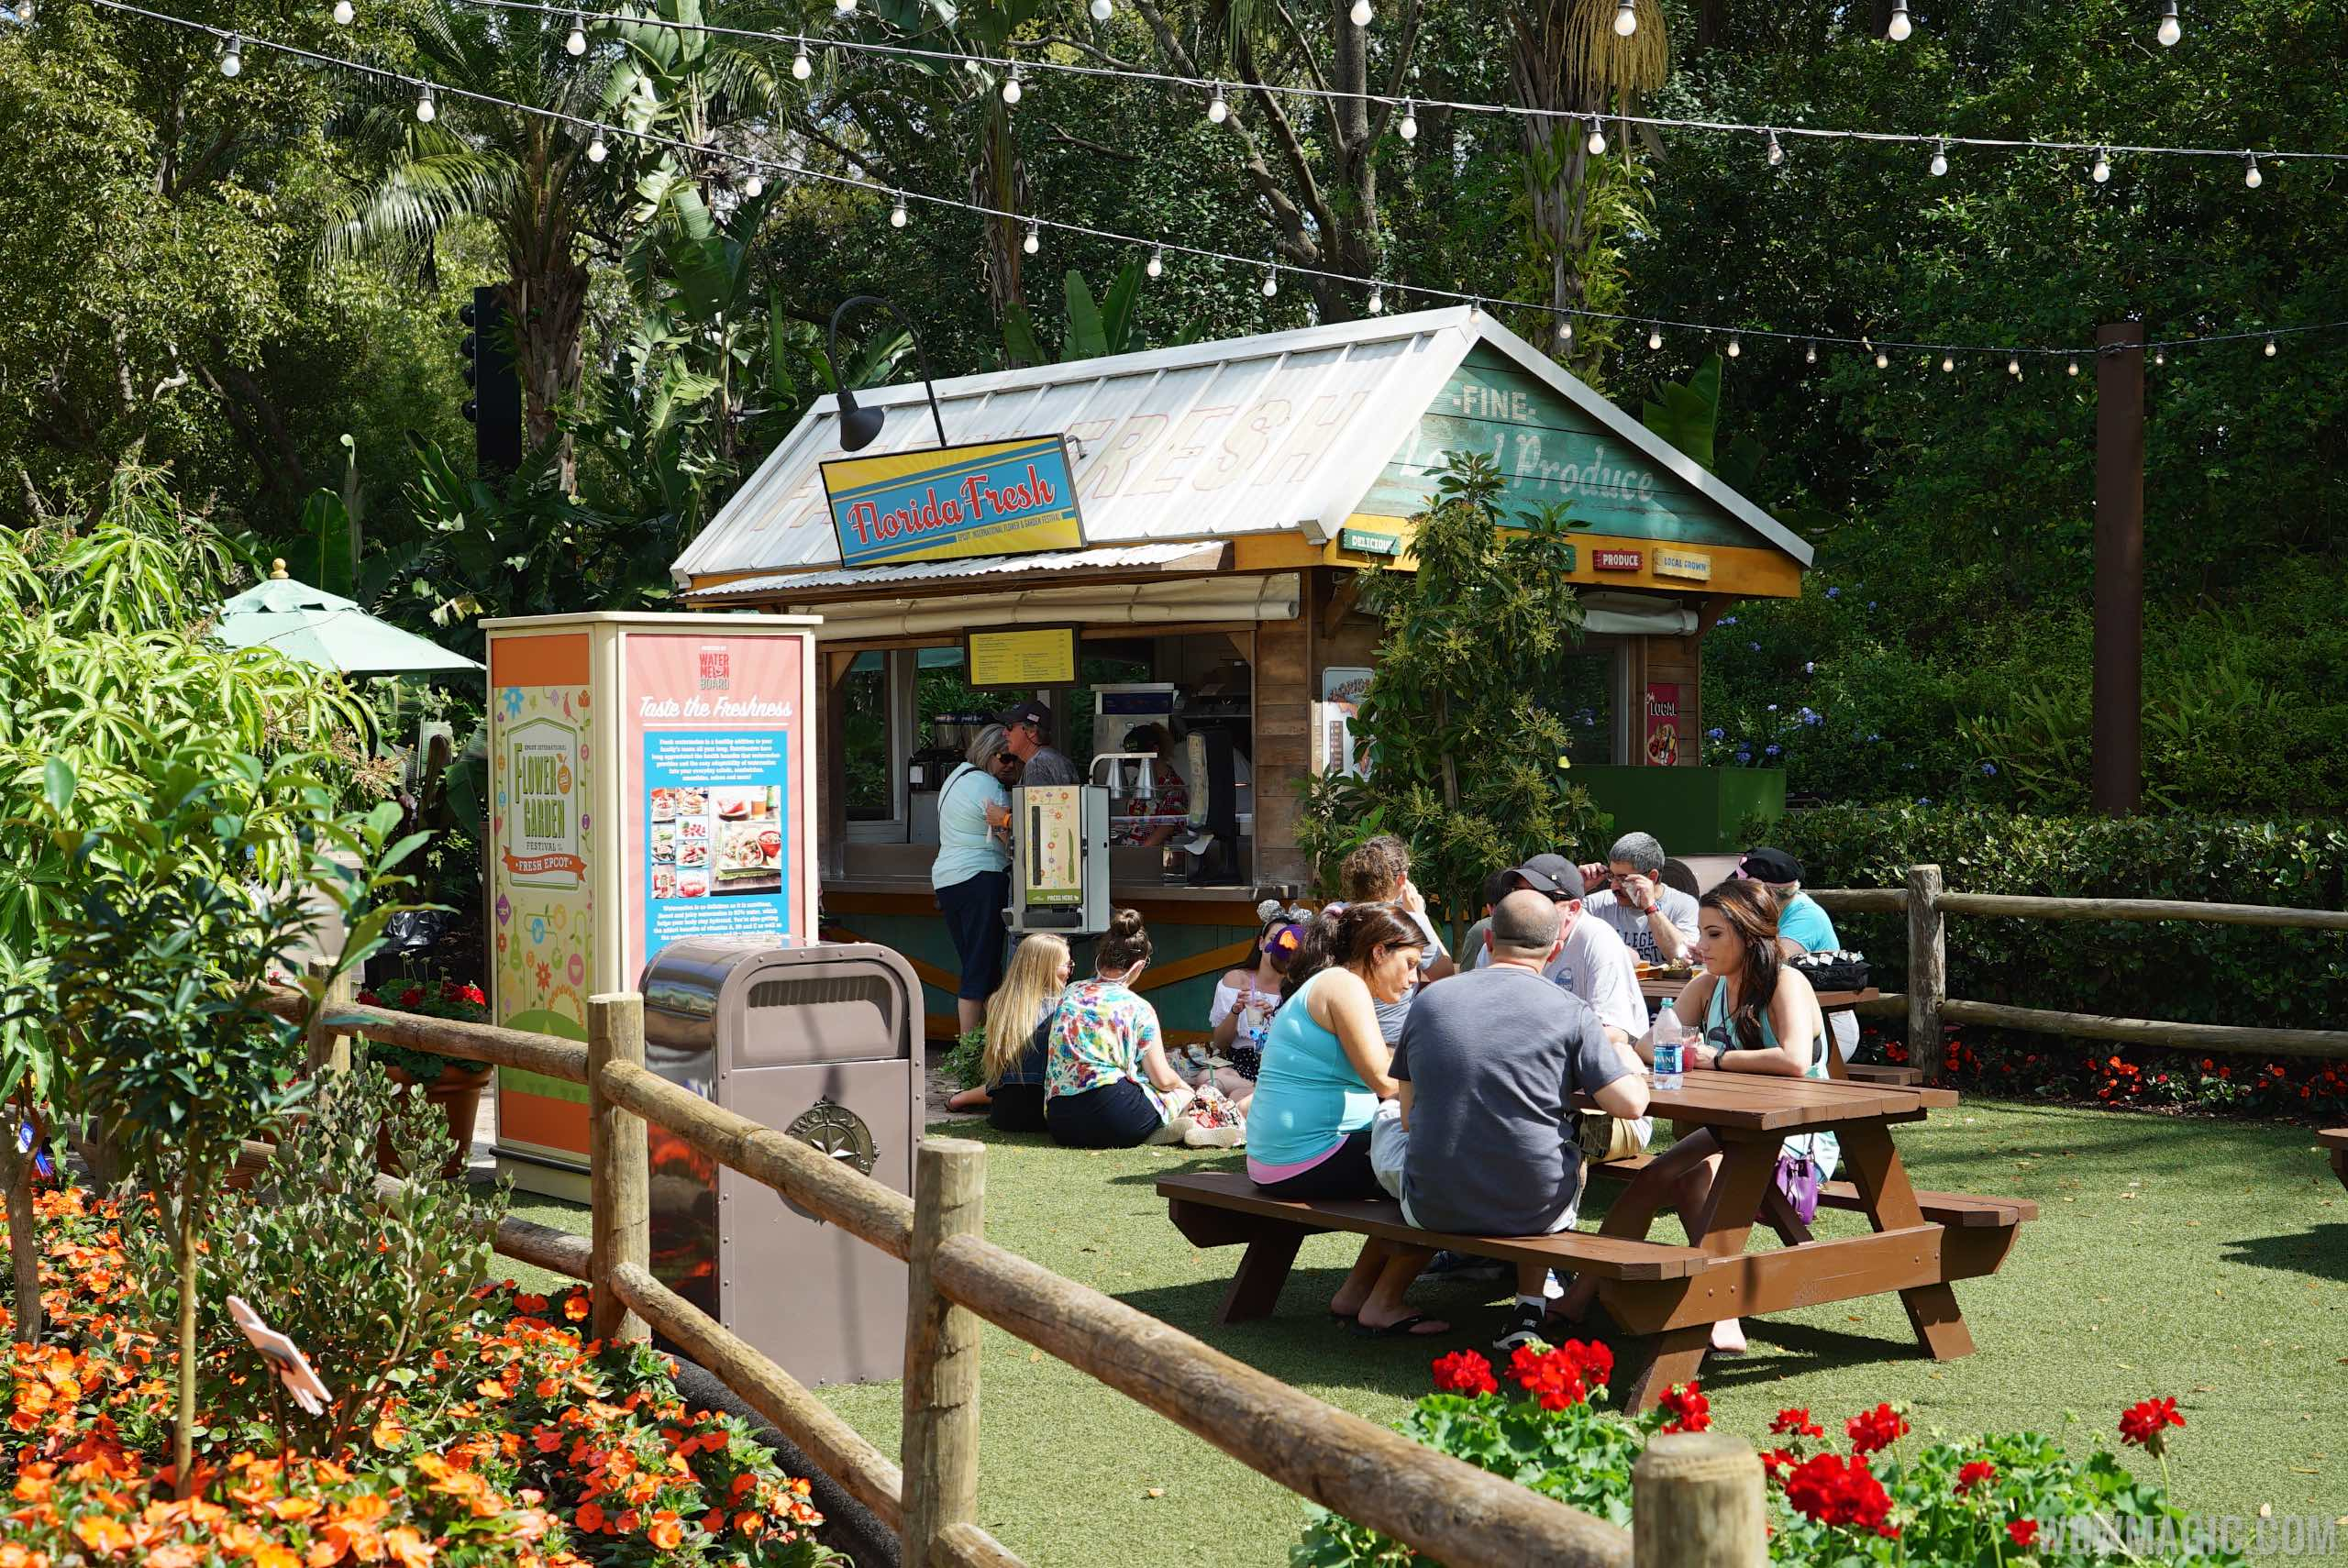 2015 Epcot Flower and Garden Festival Outdoor Kitchen - Florida Fresh kiosk